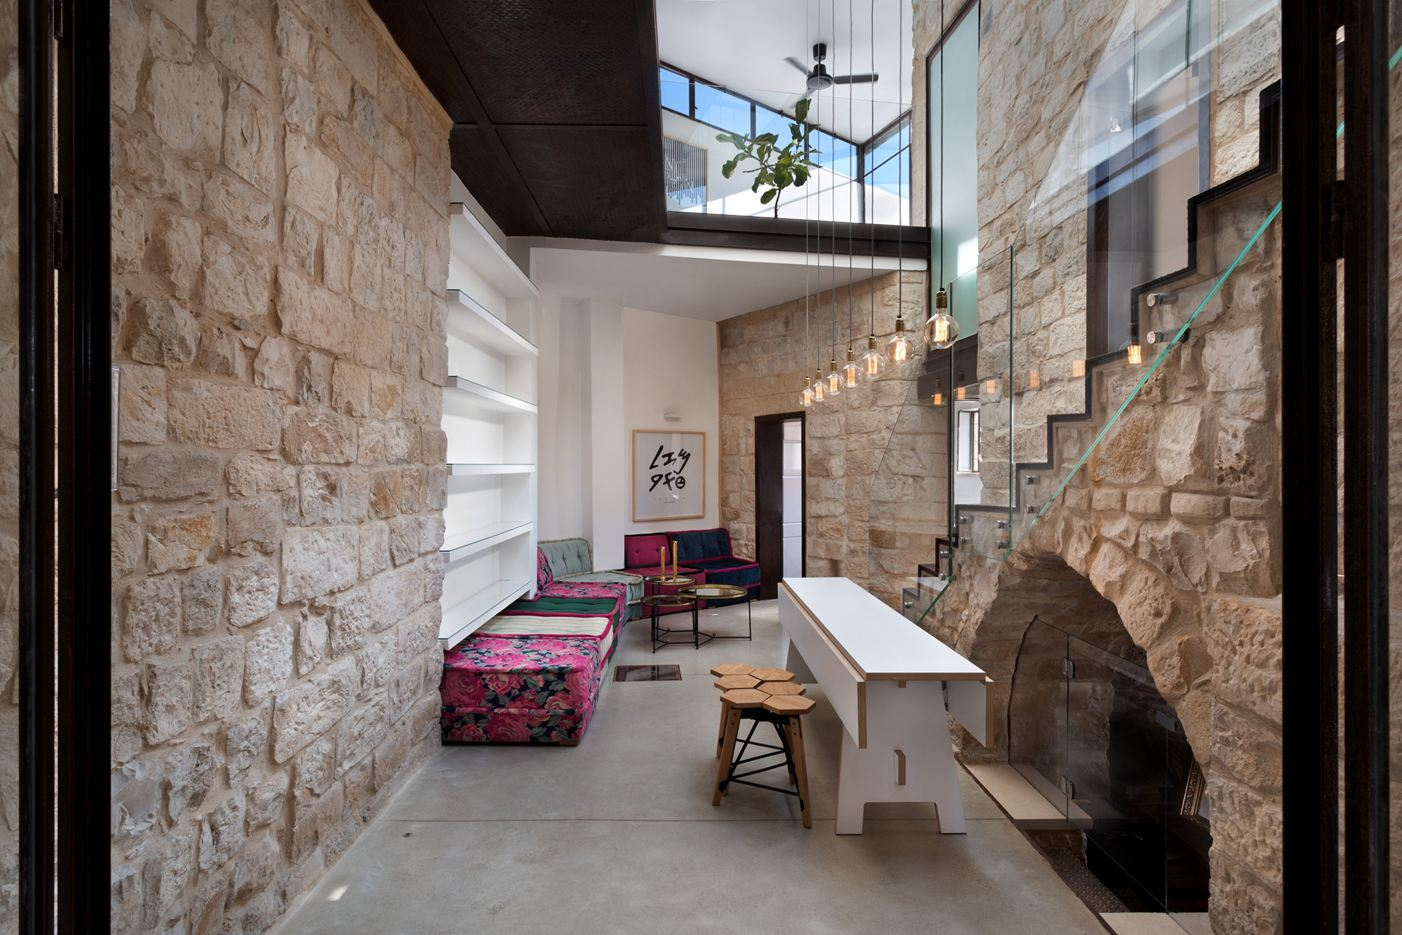 The Reflection House in Safed, Israel by Henkin Shavit Architecture & Design